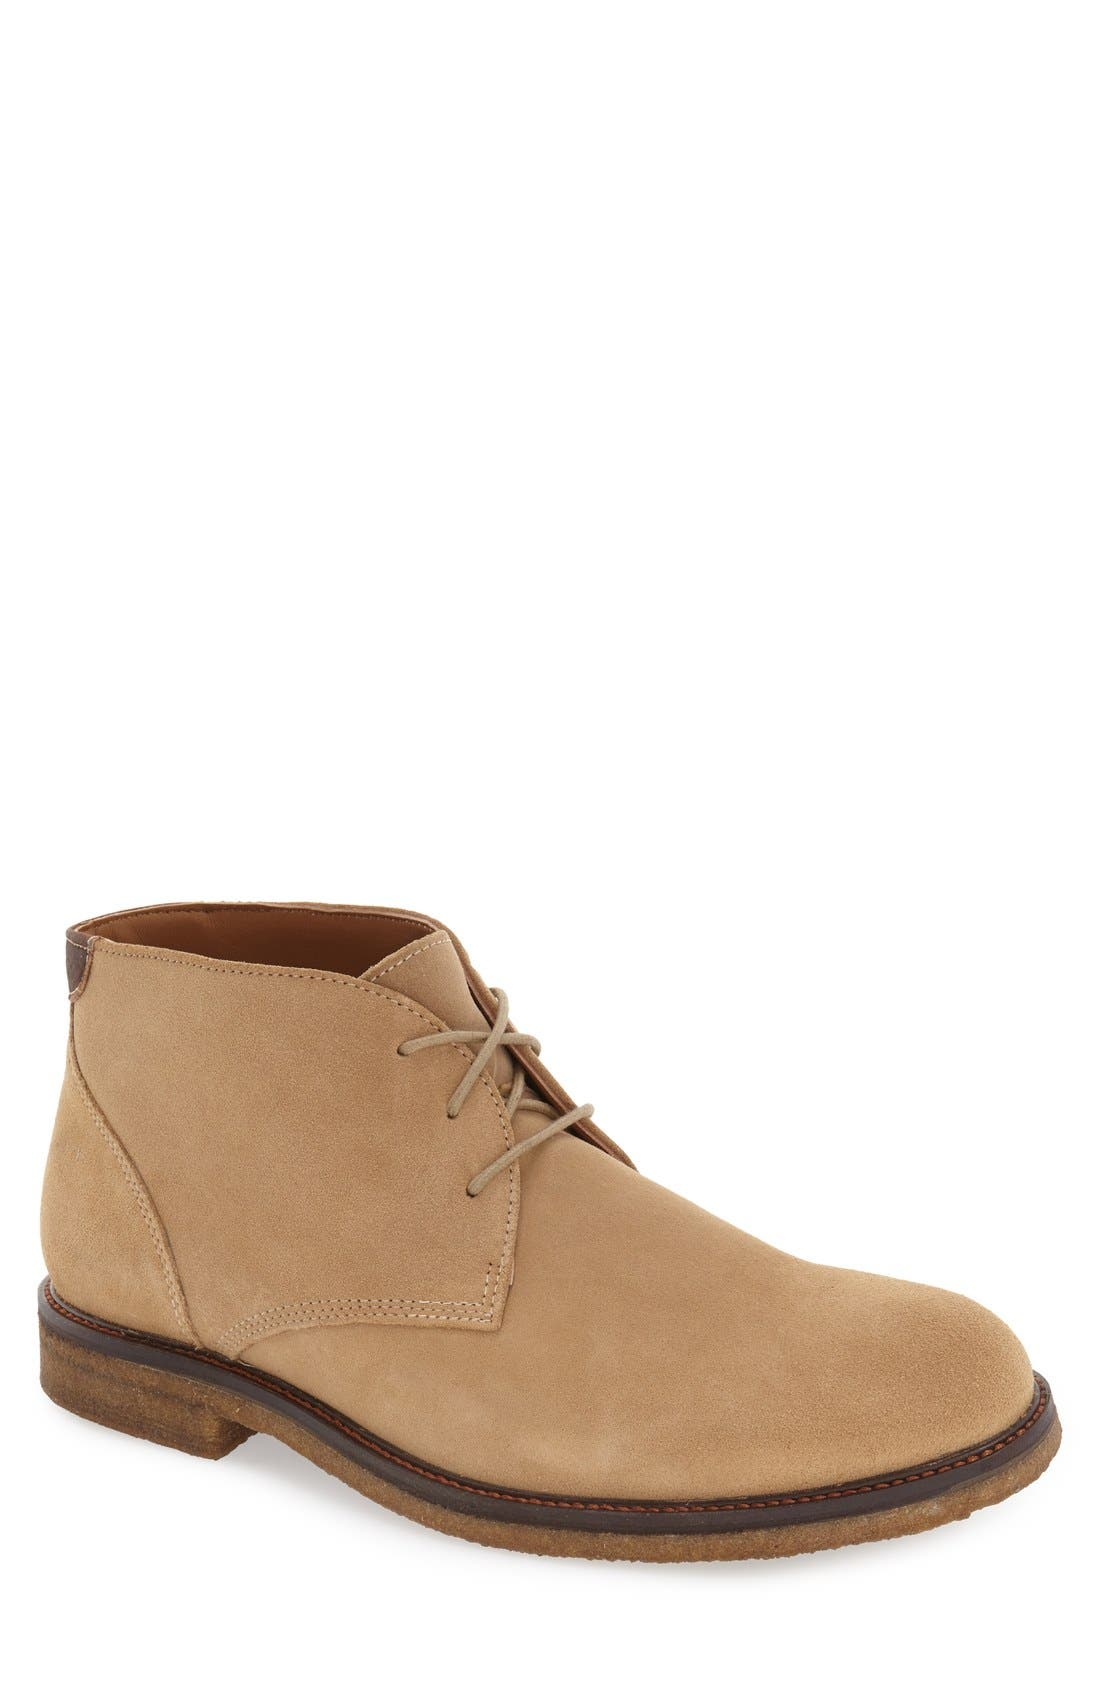 'Copeland' Suede Chukka Boot,                             Main thumbnail 1, color,                             Taupe